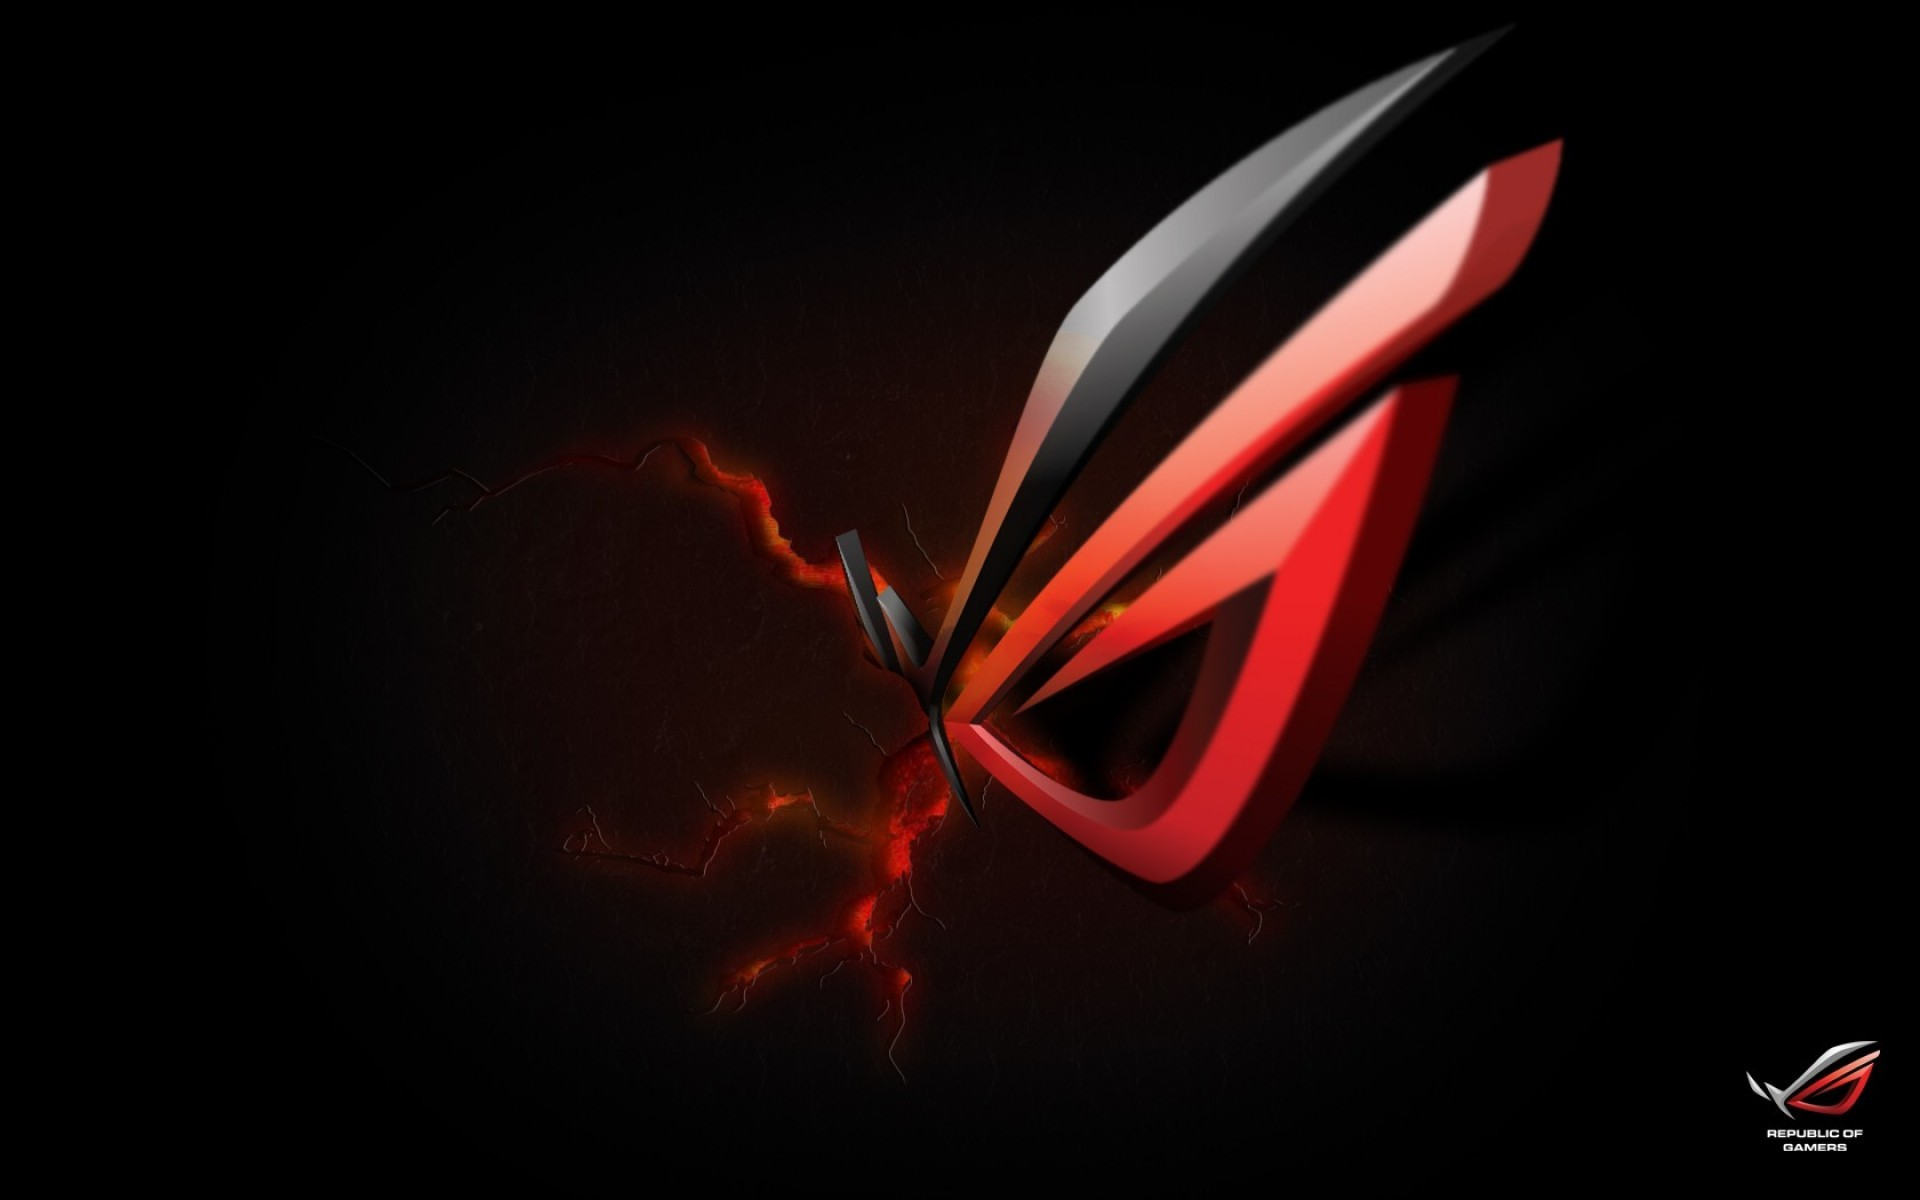 1920x1080 Download asus rog par sduval wallpaper full hd wallpapers html code - Hd Asus Gamer Republic. Download